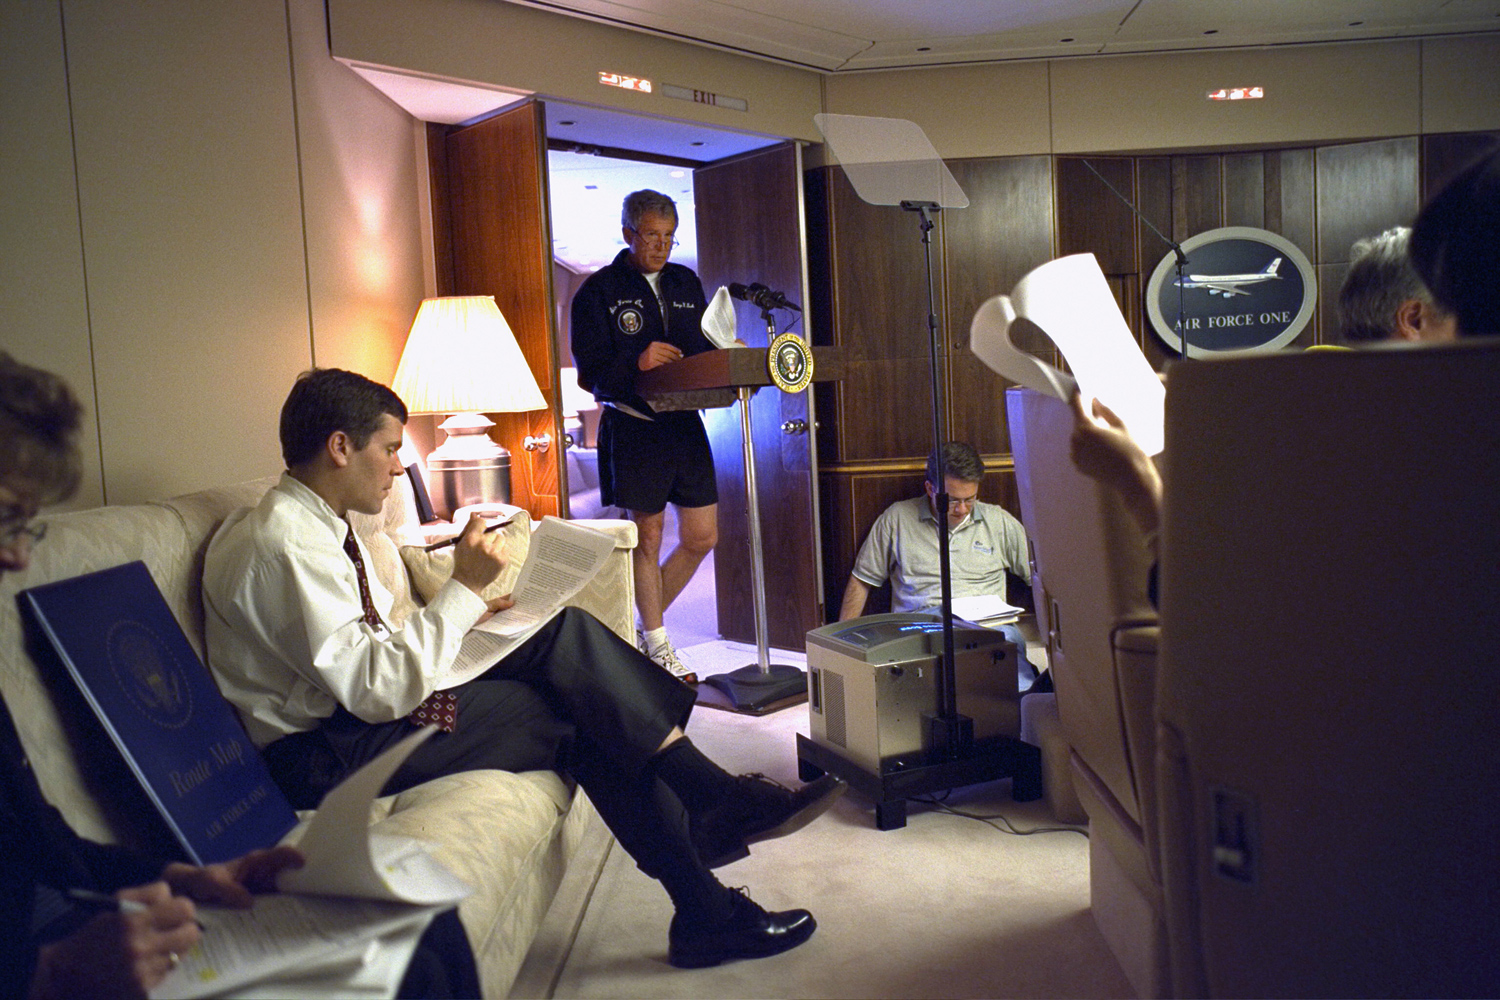 May 30, 2003. President Bush rehearses a speech as he works with staff in the conference room of Air Force One en route to Krakow, Poland.